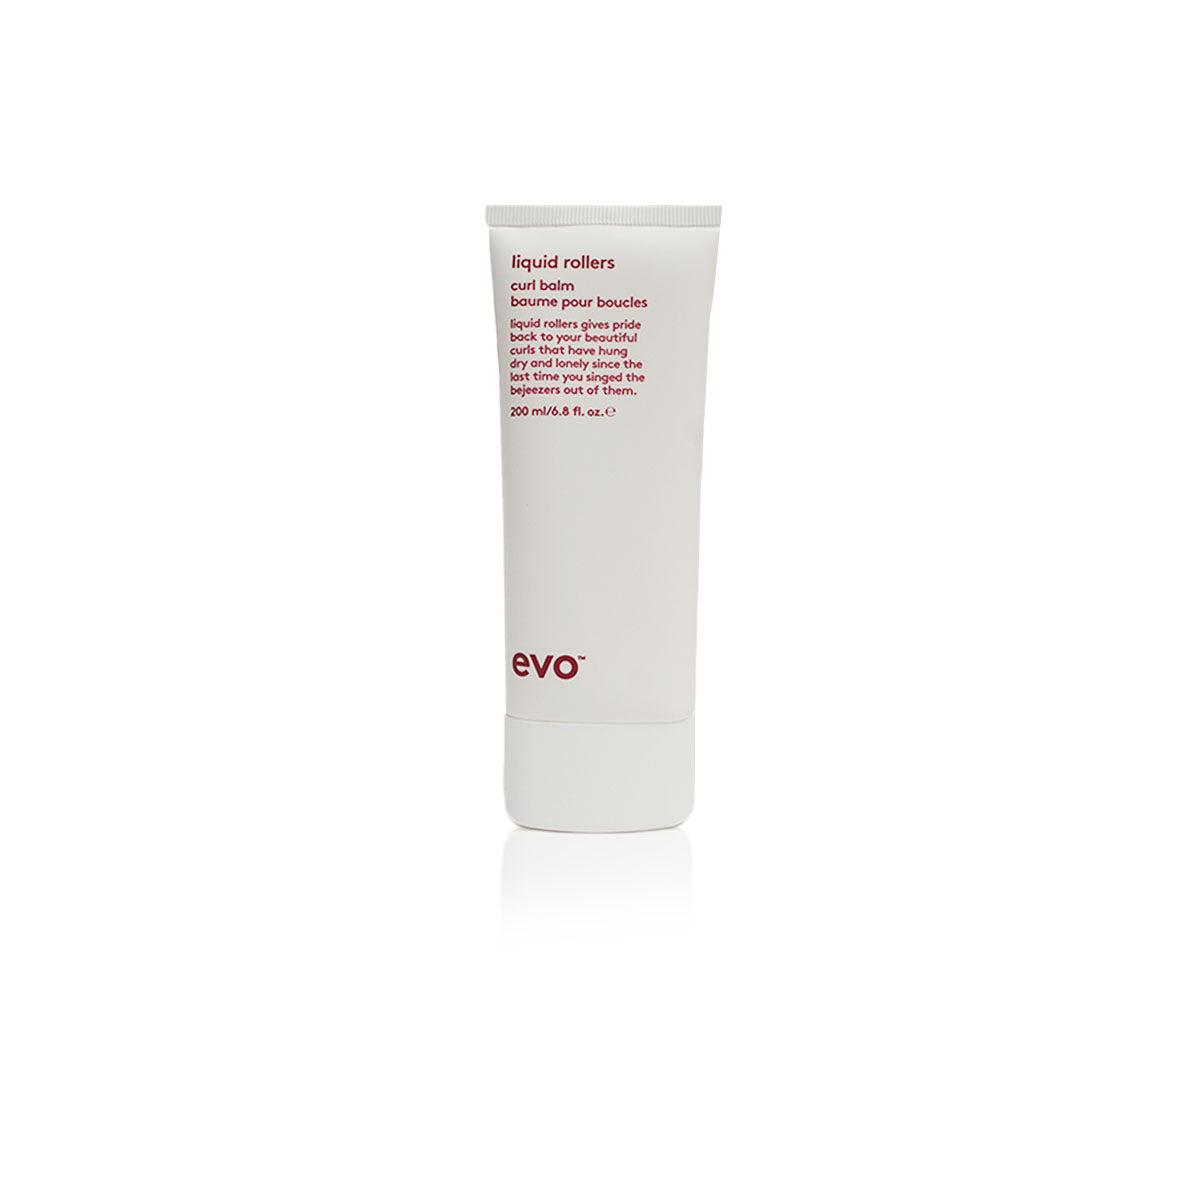 Evo liquid rollers curl balm, holds curls and waves, protects against frizz 30ml / 1.01fl.oz - Case of 3 bottles (New)